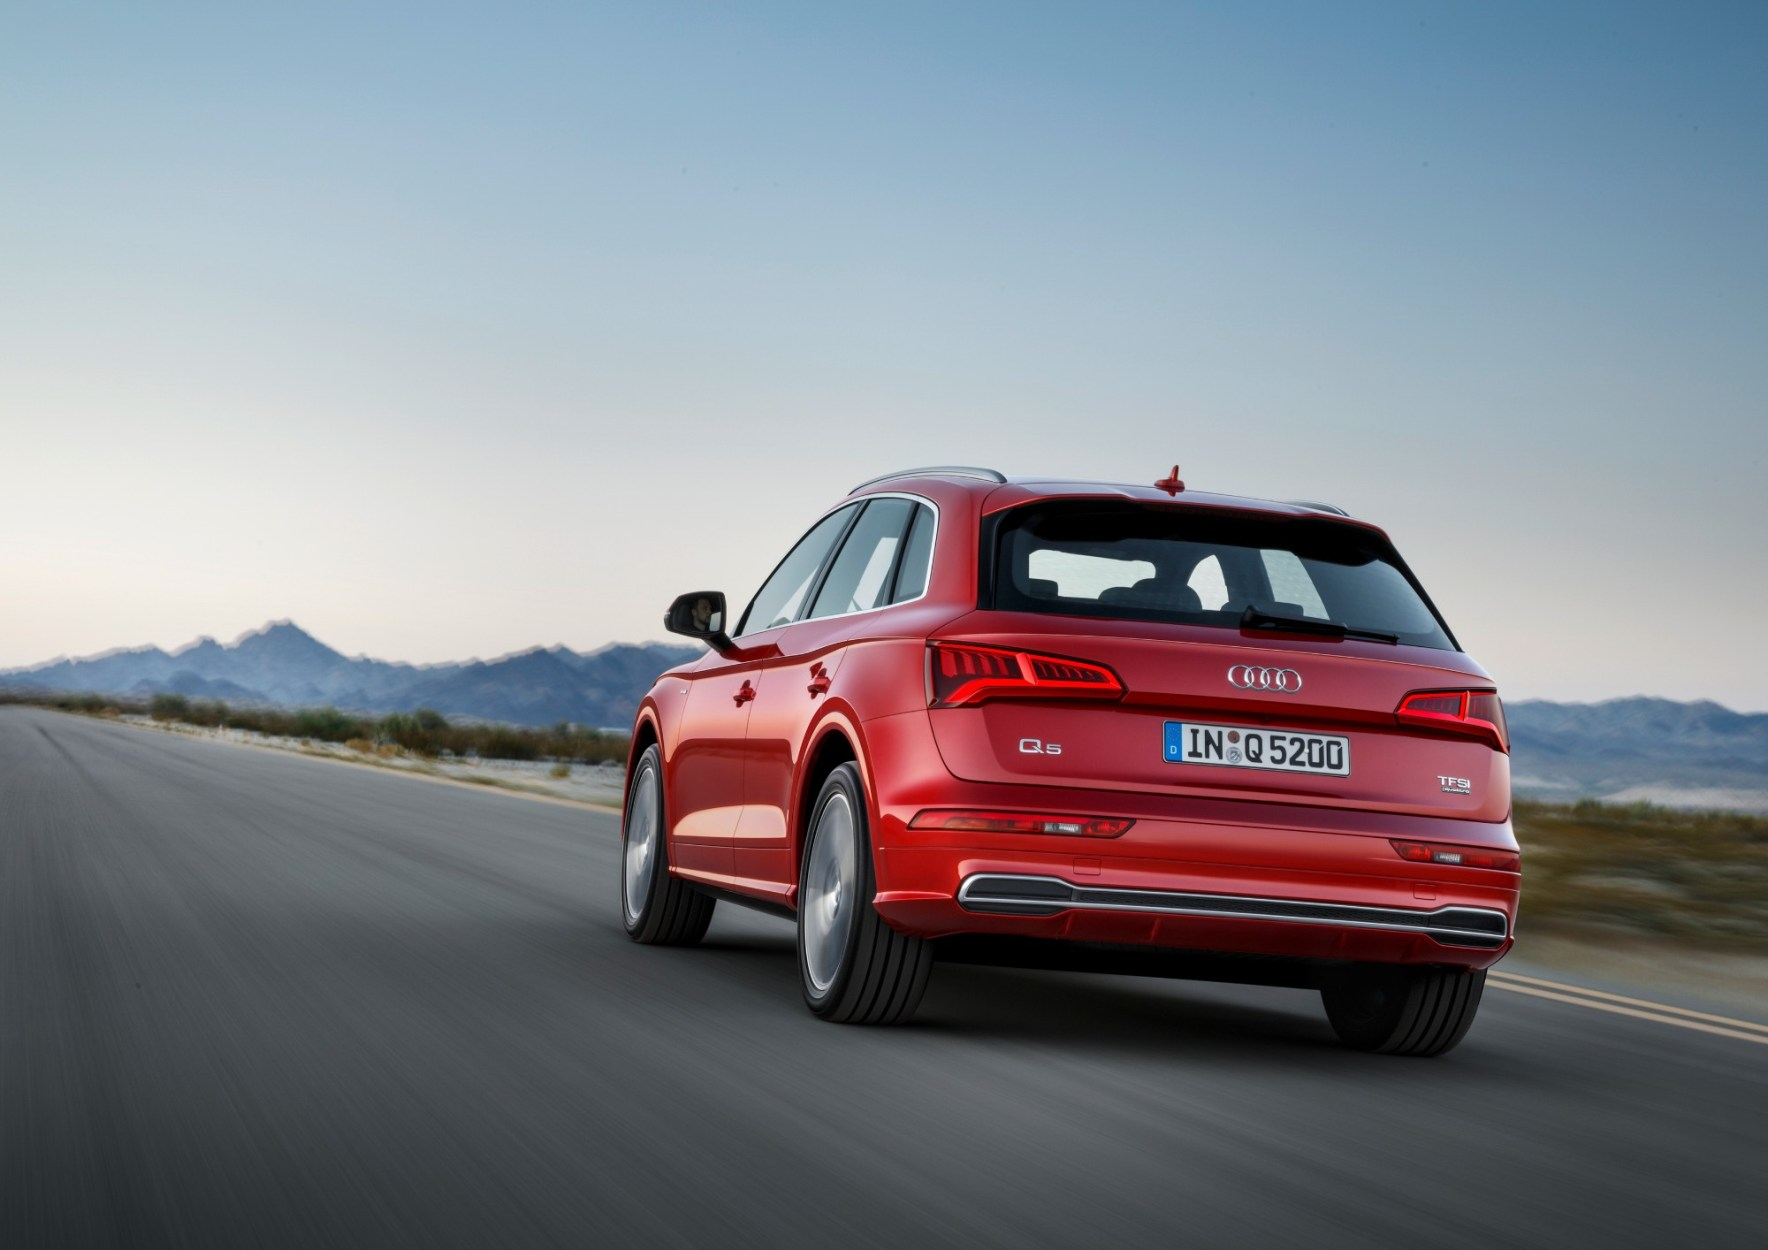 Audi Sales In May Up Slightly Year-On-Year